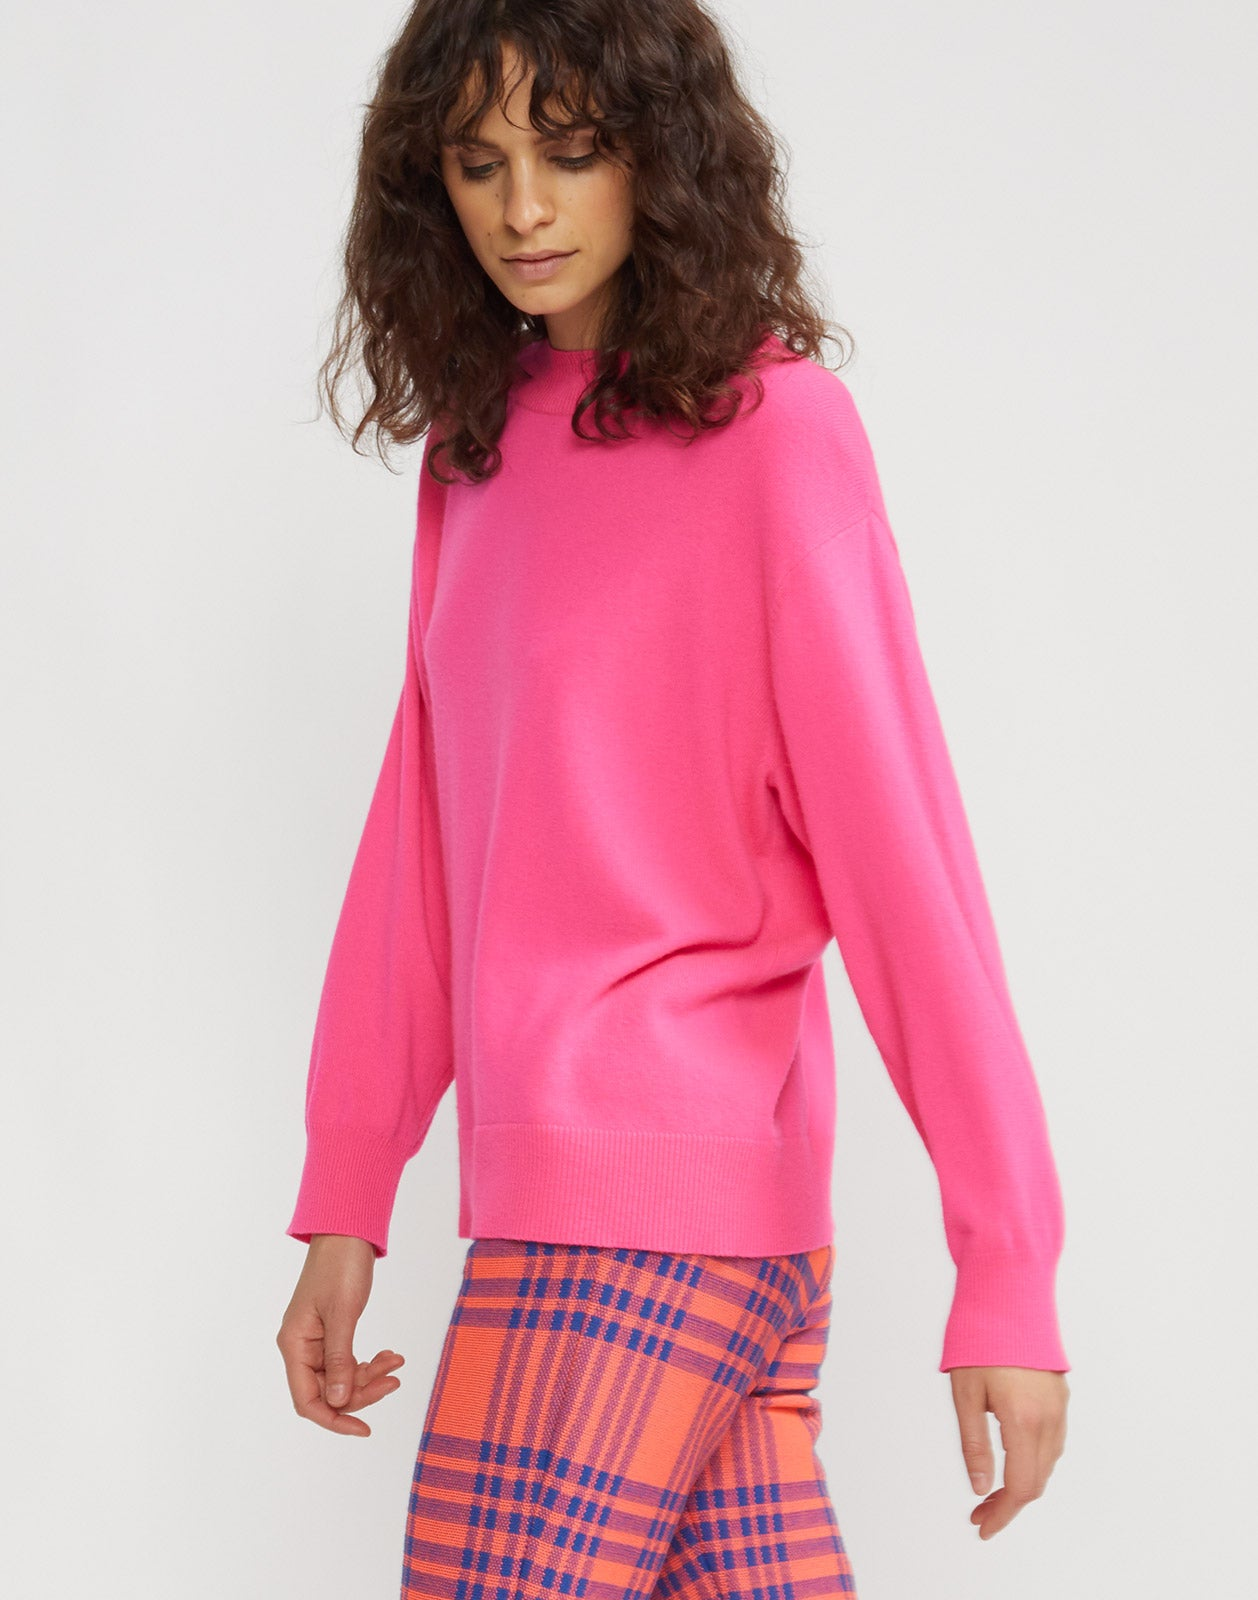 Side view of model wearing Anna cashmere sweater in fuchsia.